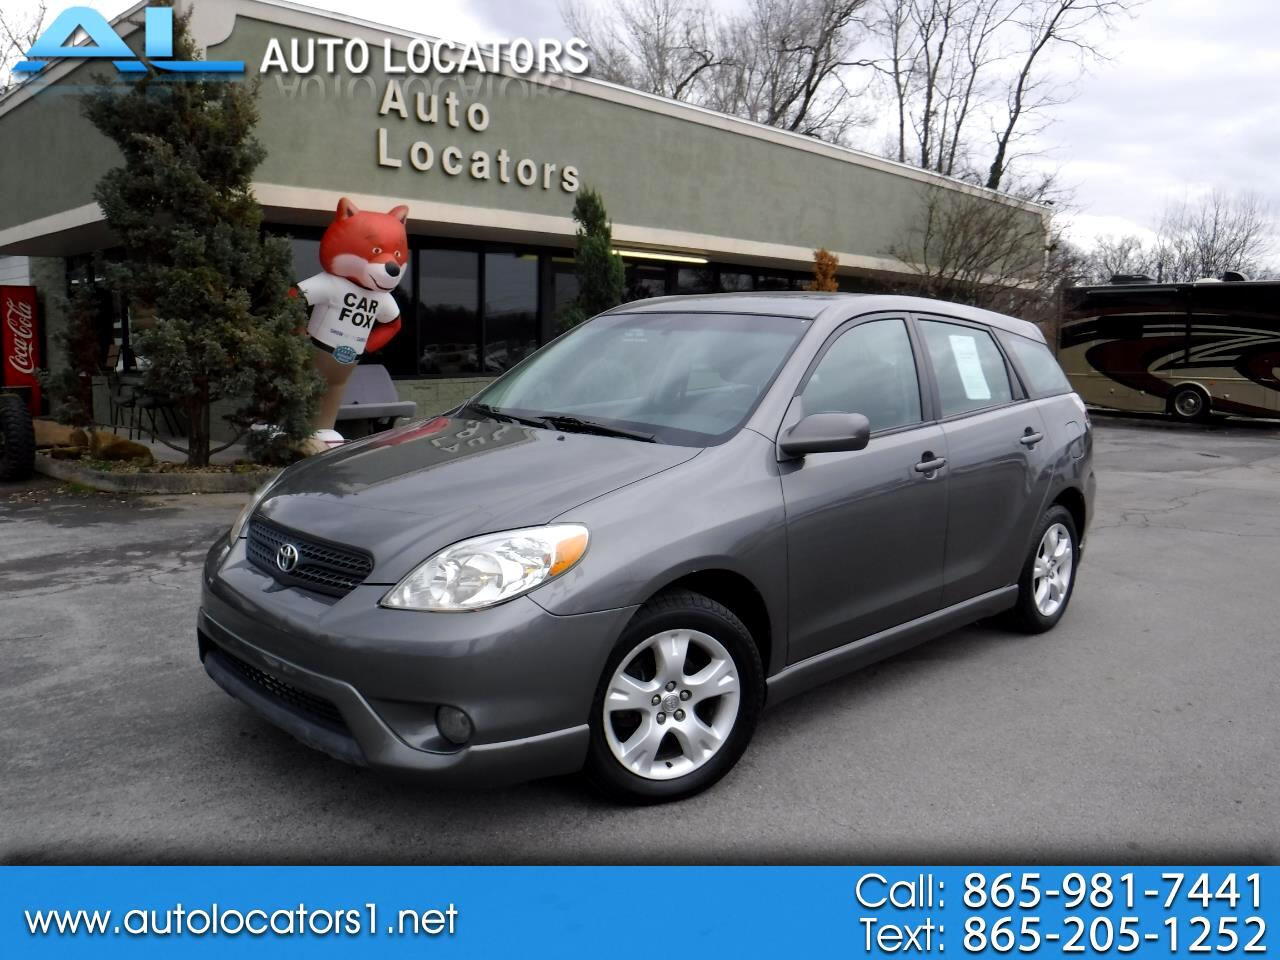 2007 Toyota Matrix 5dr Wgn Auto XR (Natl)